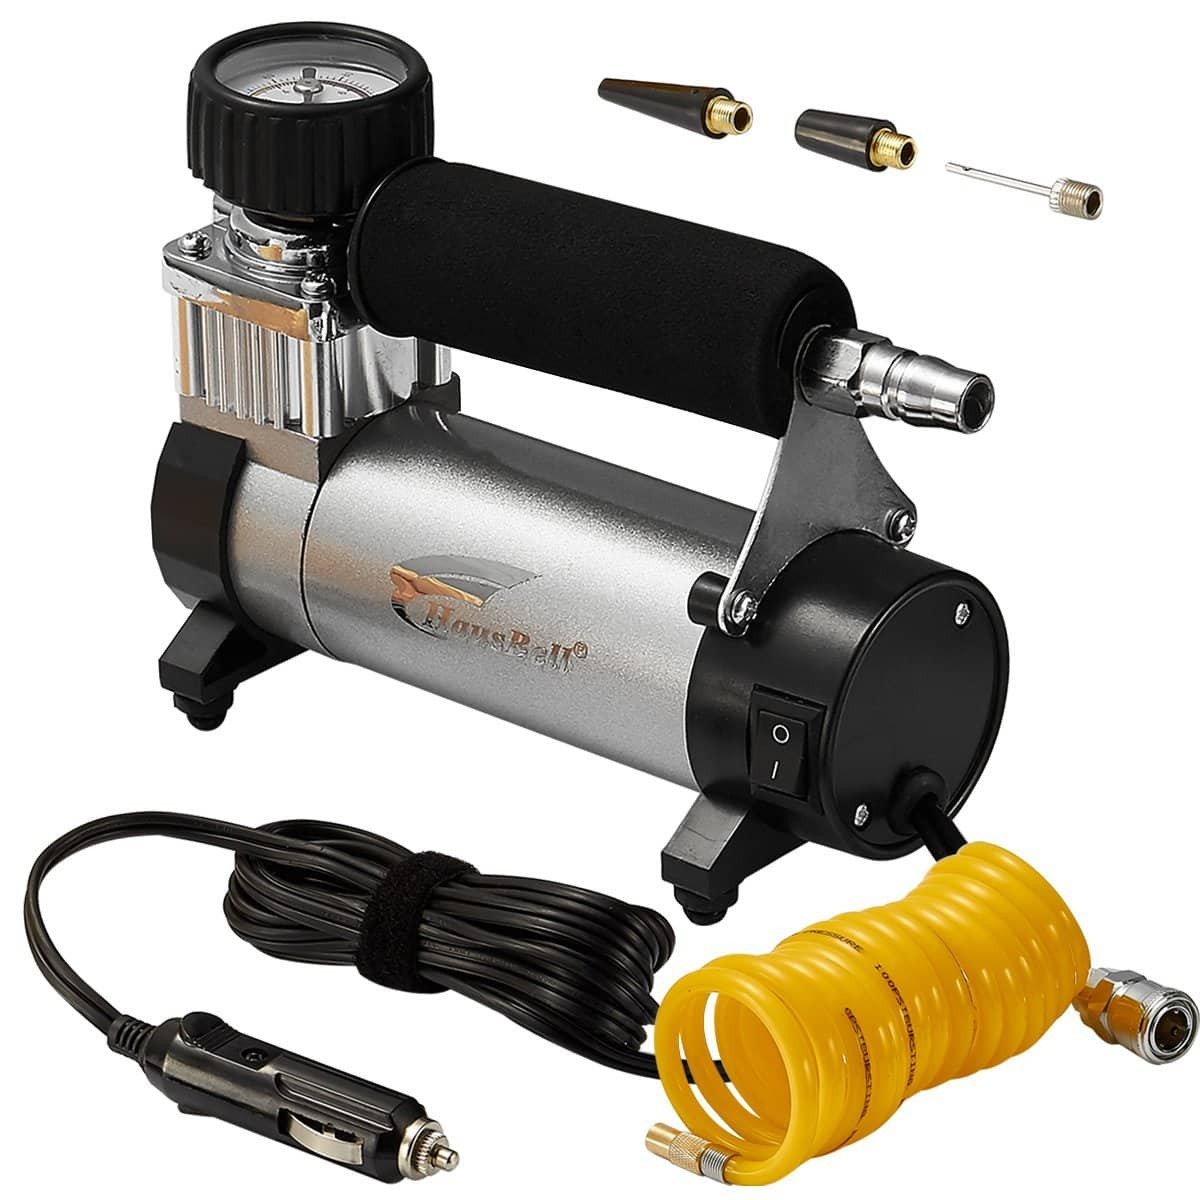 Portable Air Compressor, Hausbell Air Compressor Kit Mini DC12V Multi-Use Oil-Free Air Tools Tire Inflator for $22.49